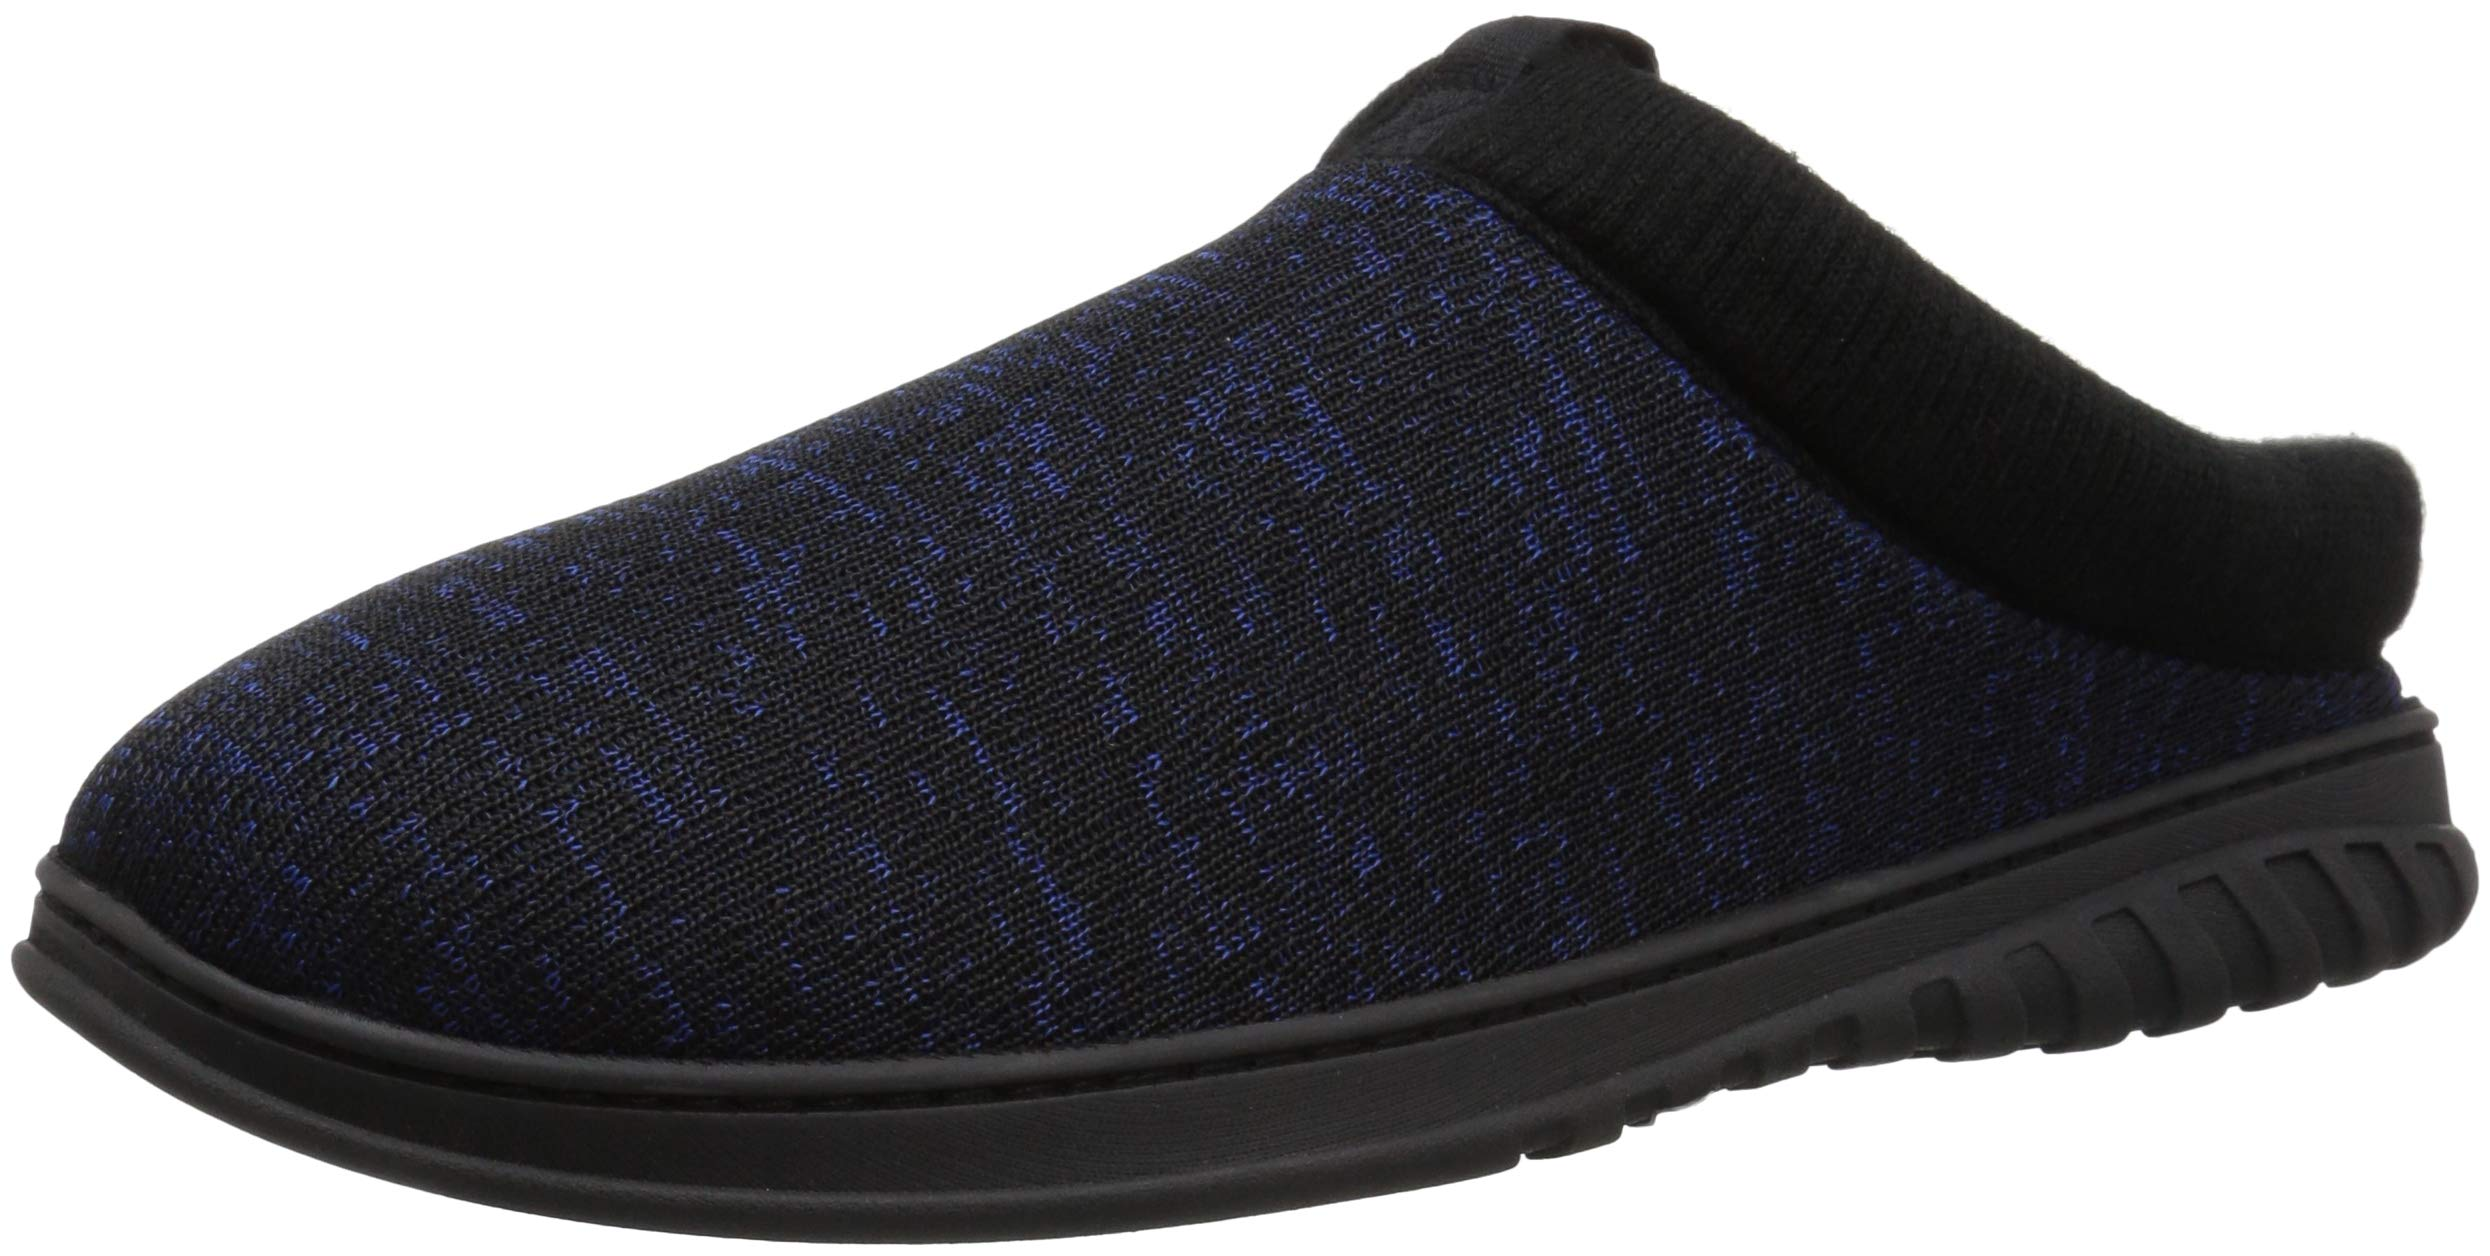 Dearfoams Men's Clog with Rib Knit Cuff Slipper, Navy Blazer, L Regular US